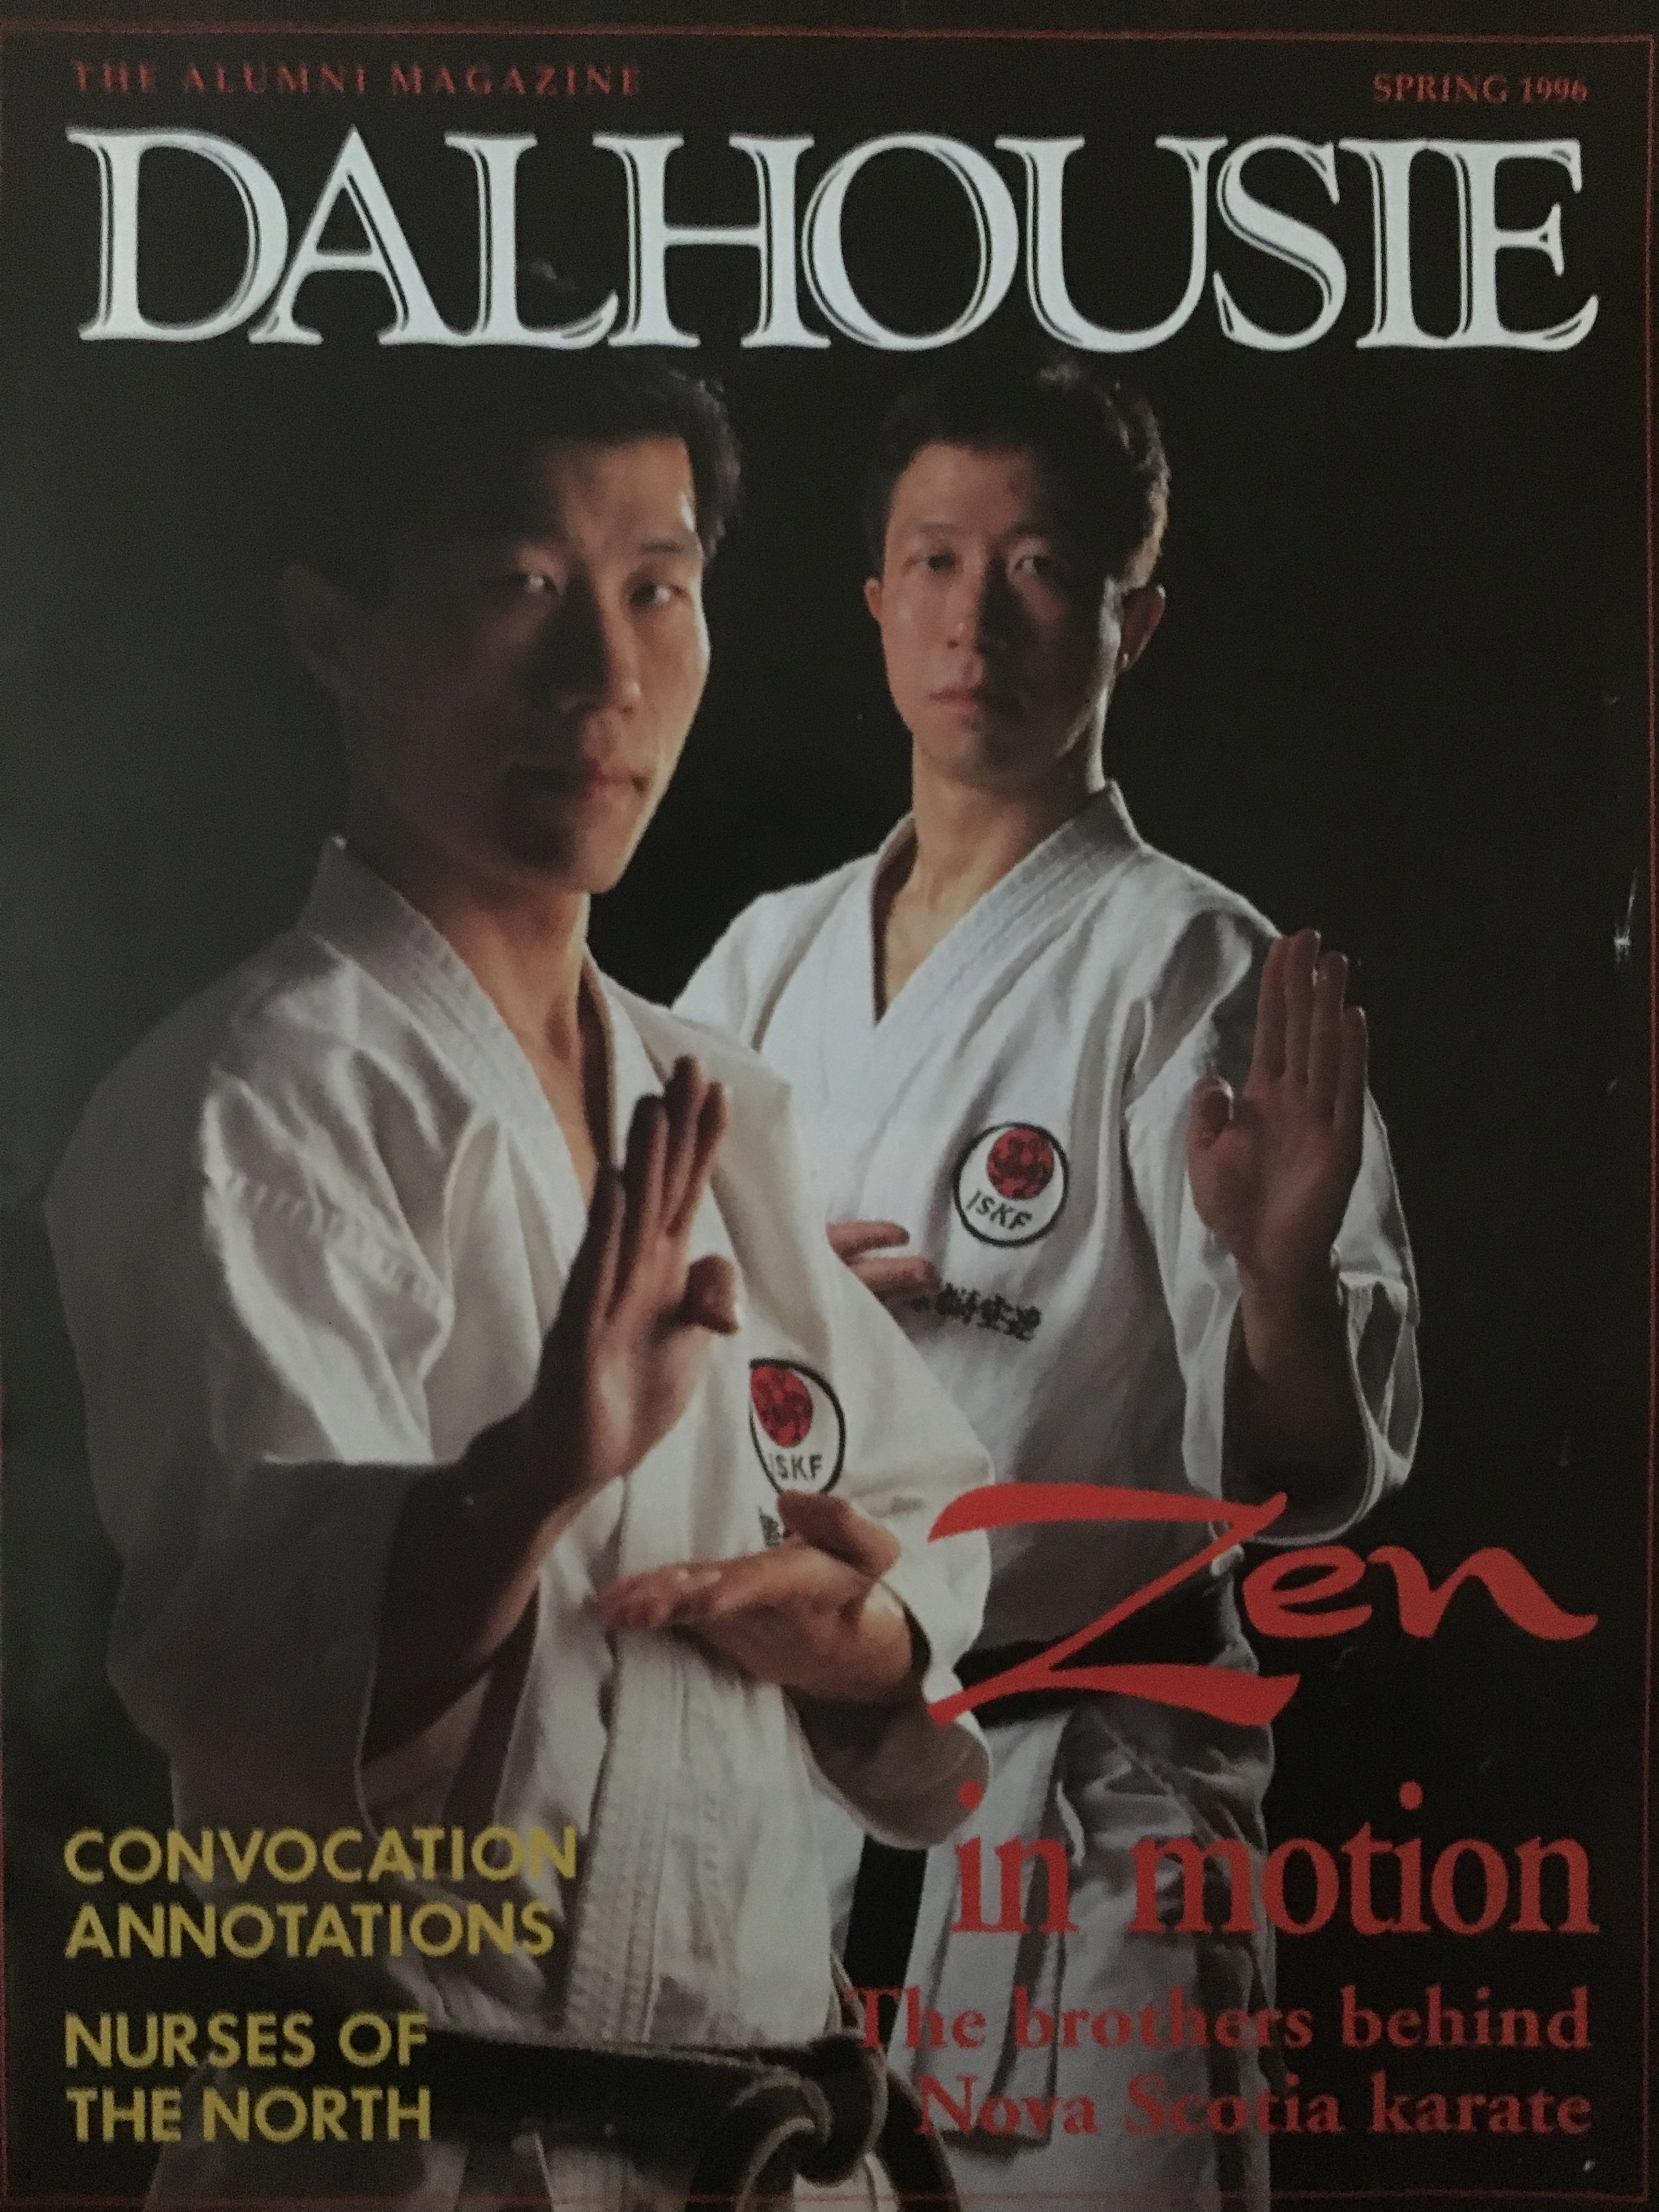 - Head instructor, Sensei Tony Tam, ISKF Certified 8th degree black belt and Dal alumnus ('82 BComm/'85 LLB), founded the non profit school (dojo) in 1979 on the Dal campus. Vice Head Instructor is Dal alumnus Sensei Danny Tam('85 DDS), and also an ISKF Certified 8th degree black belt. The dojo is dedicated to promoting karate to students, faculty, and staff.